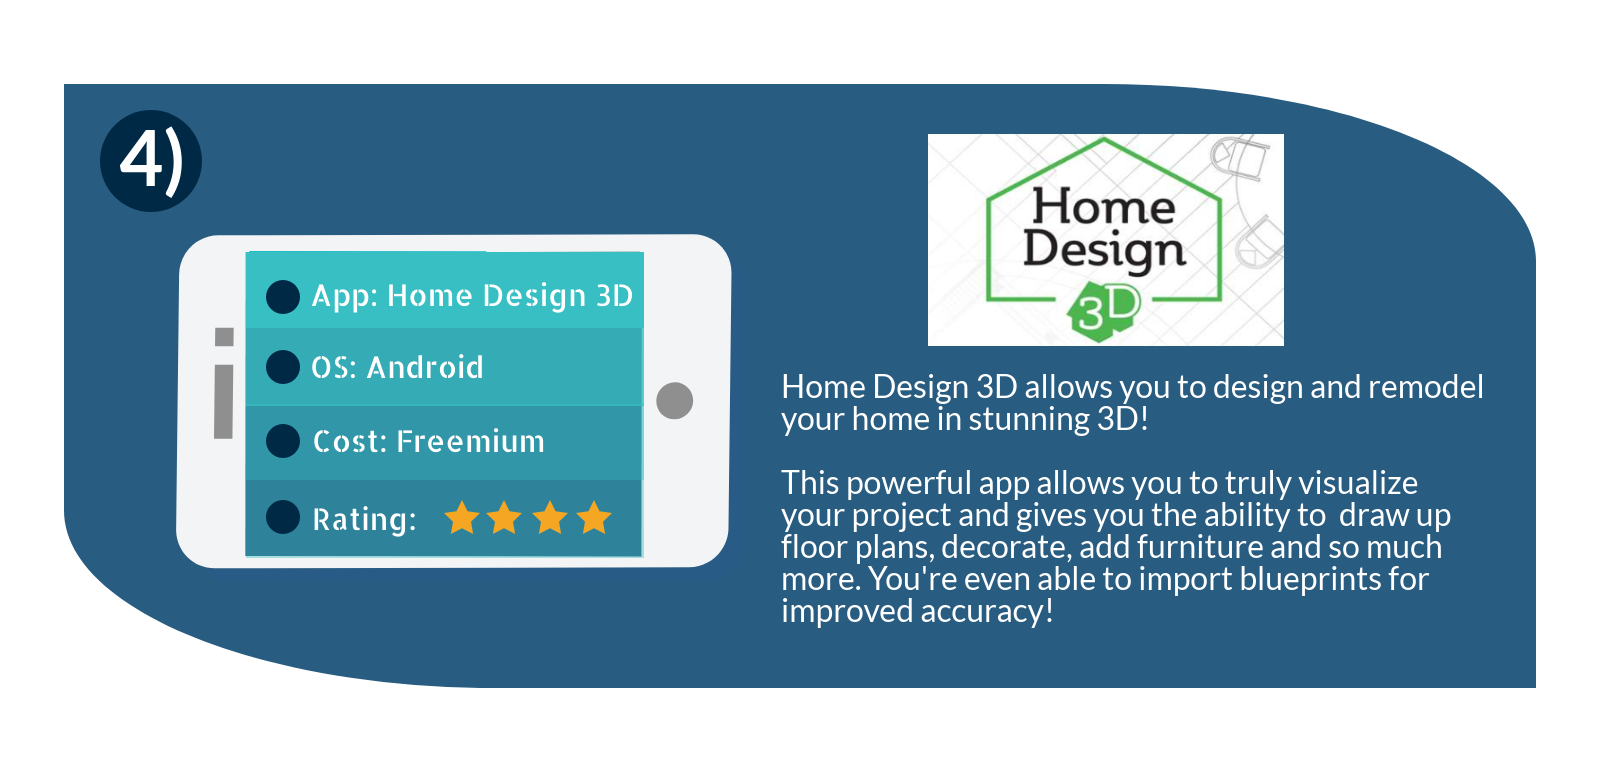 The home design 3d app allows you to remodel your home in 3D